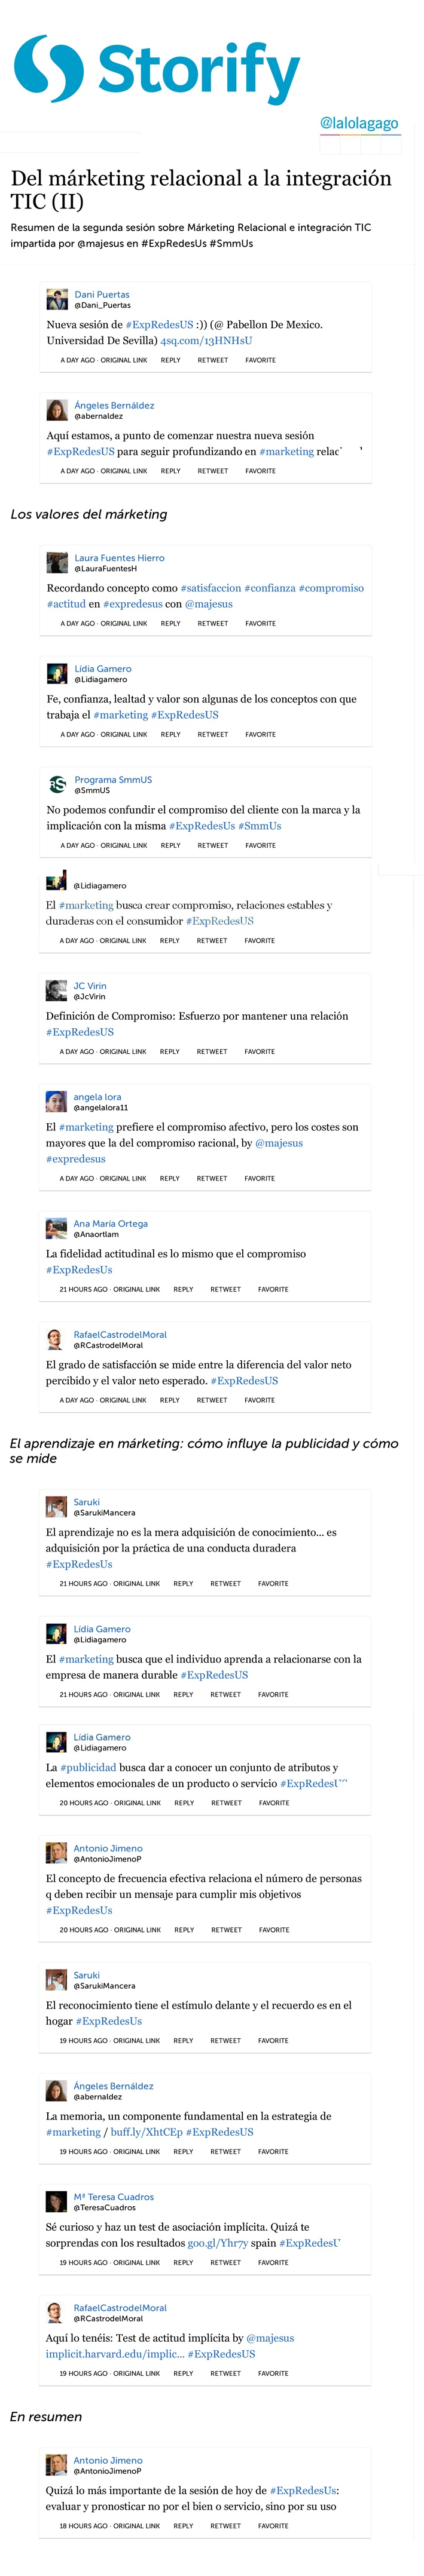 Del Marketing relacional a la integración TIC (II), sesión impartida por @majesus